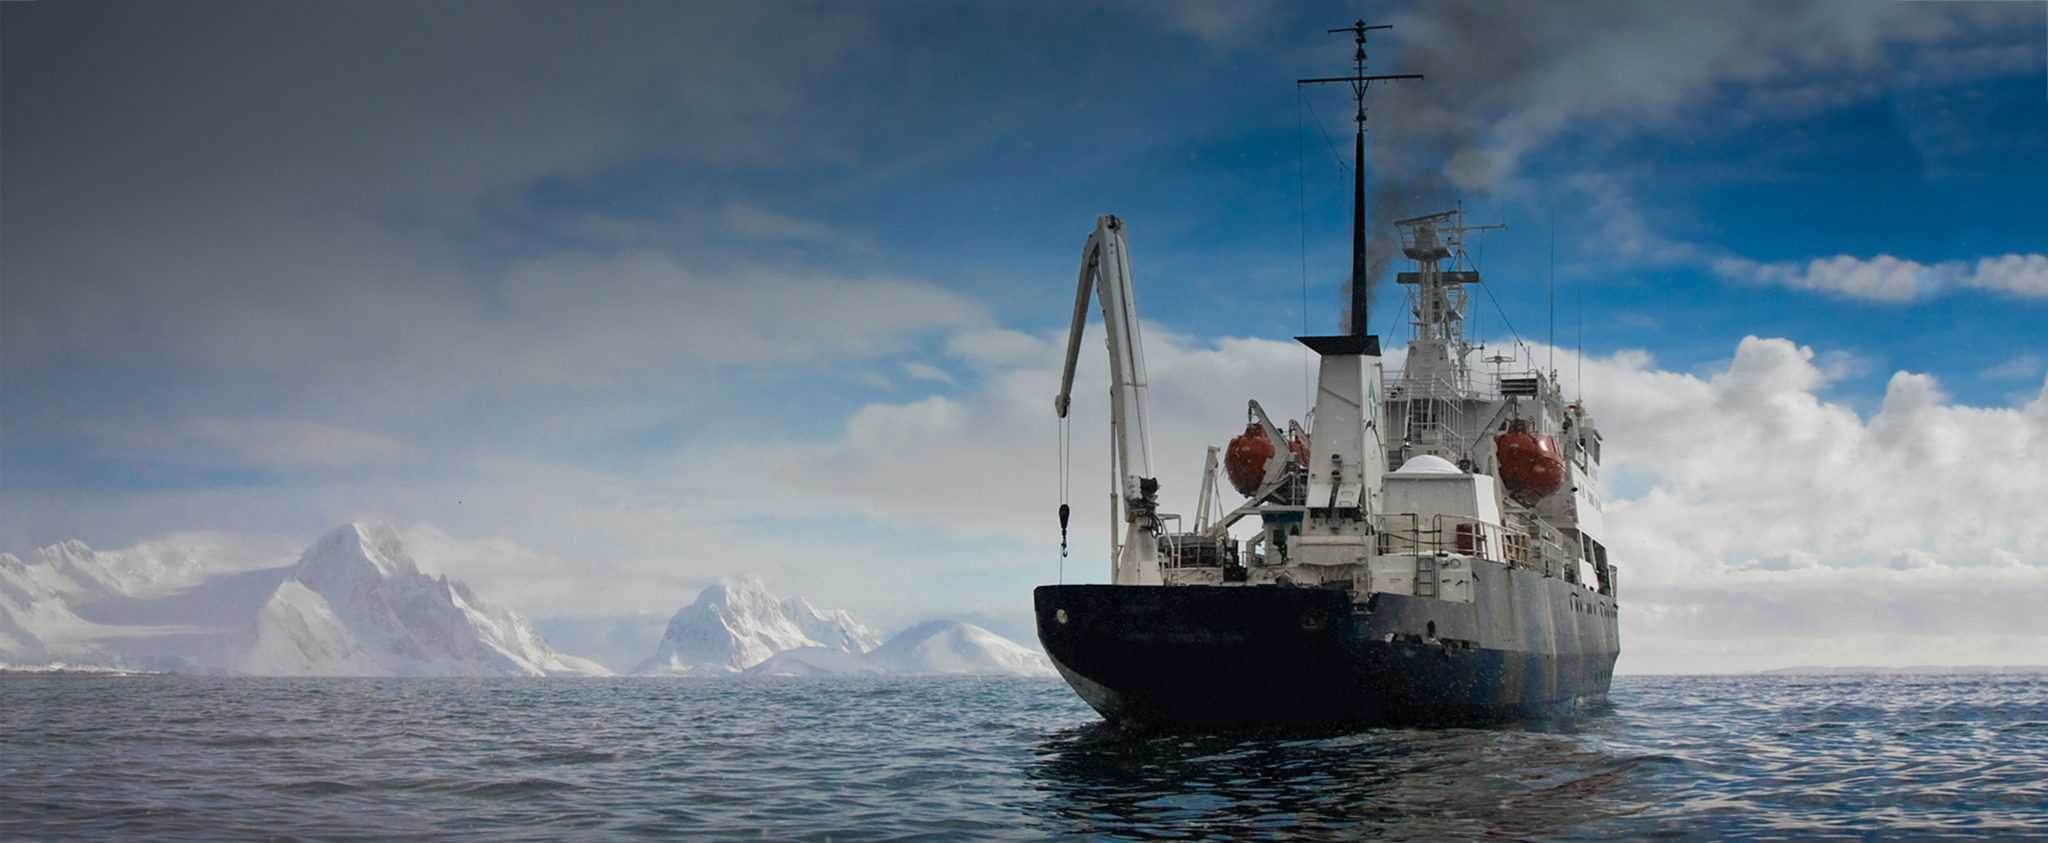 Vessel Tracking Devices Fishing Boat in Arctic